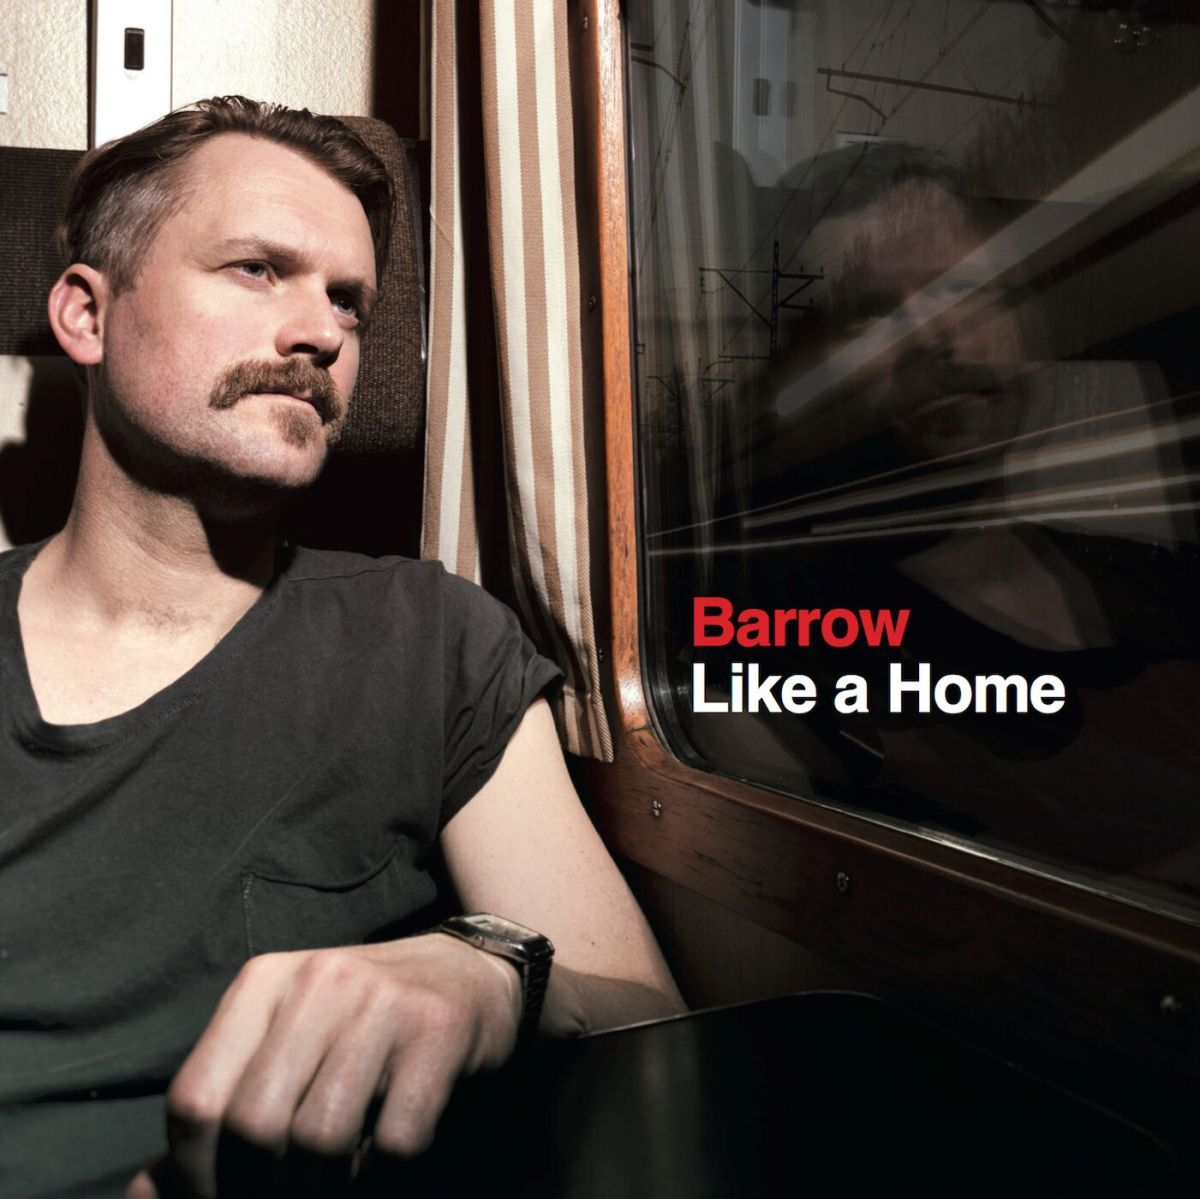 Anmeldelse: Barrow: Like a home (Omniphile Records MBMCD004)